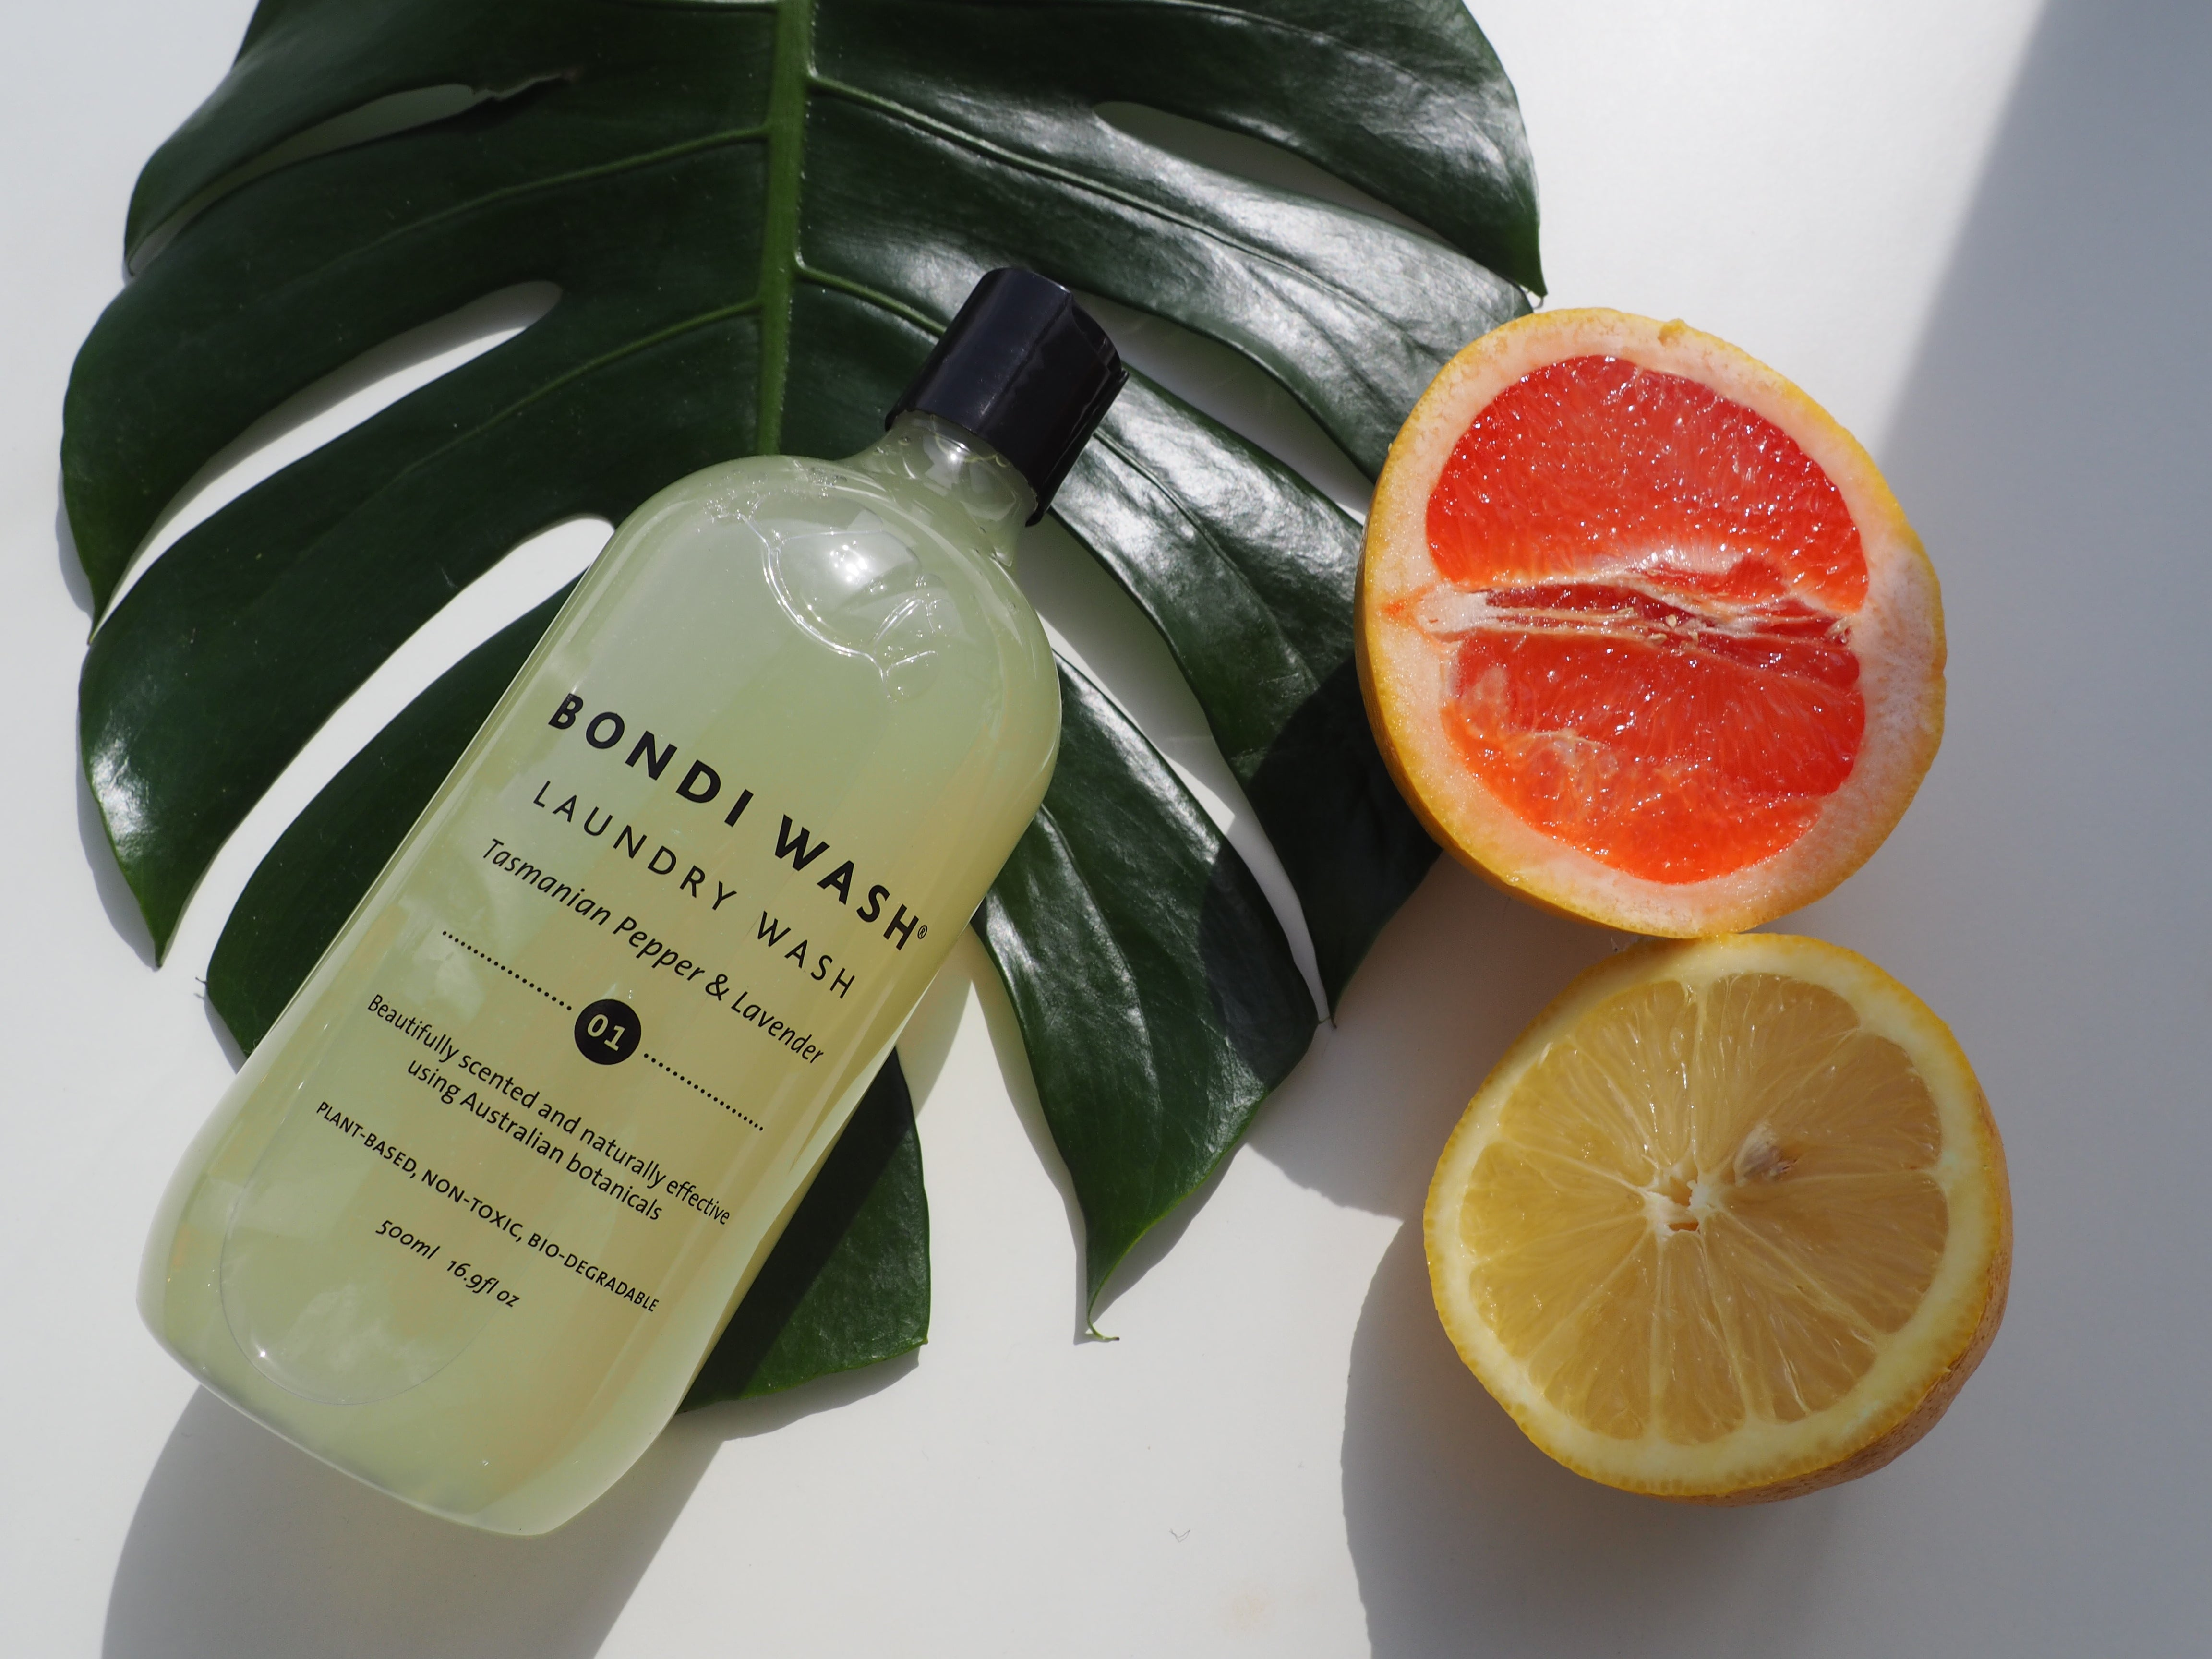 TASMANIAN PEPPER & LAVENDER LAUNDRY WASH